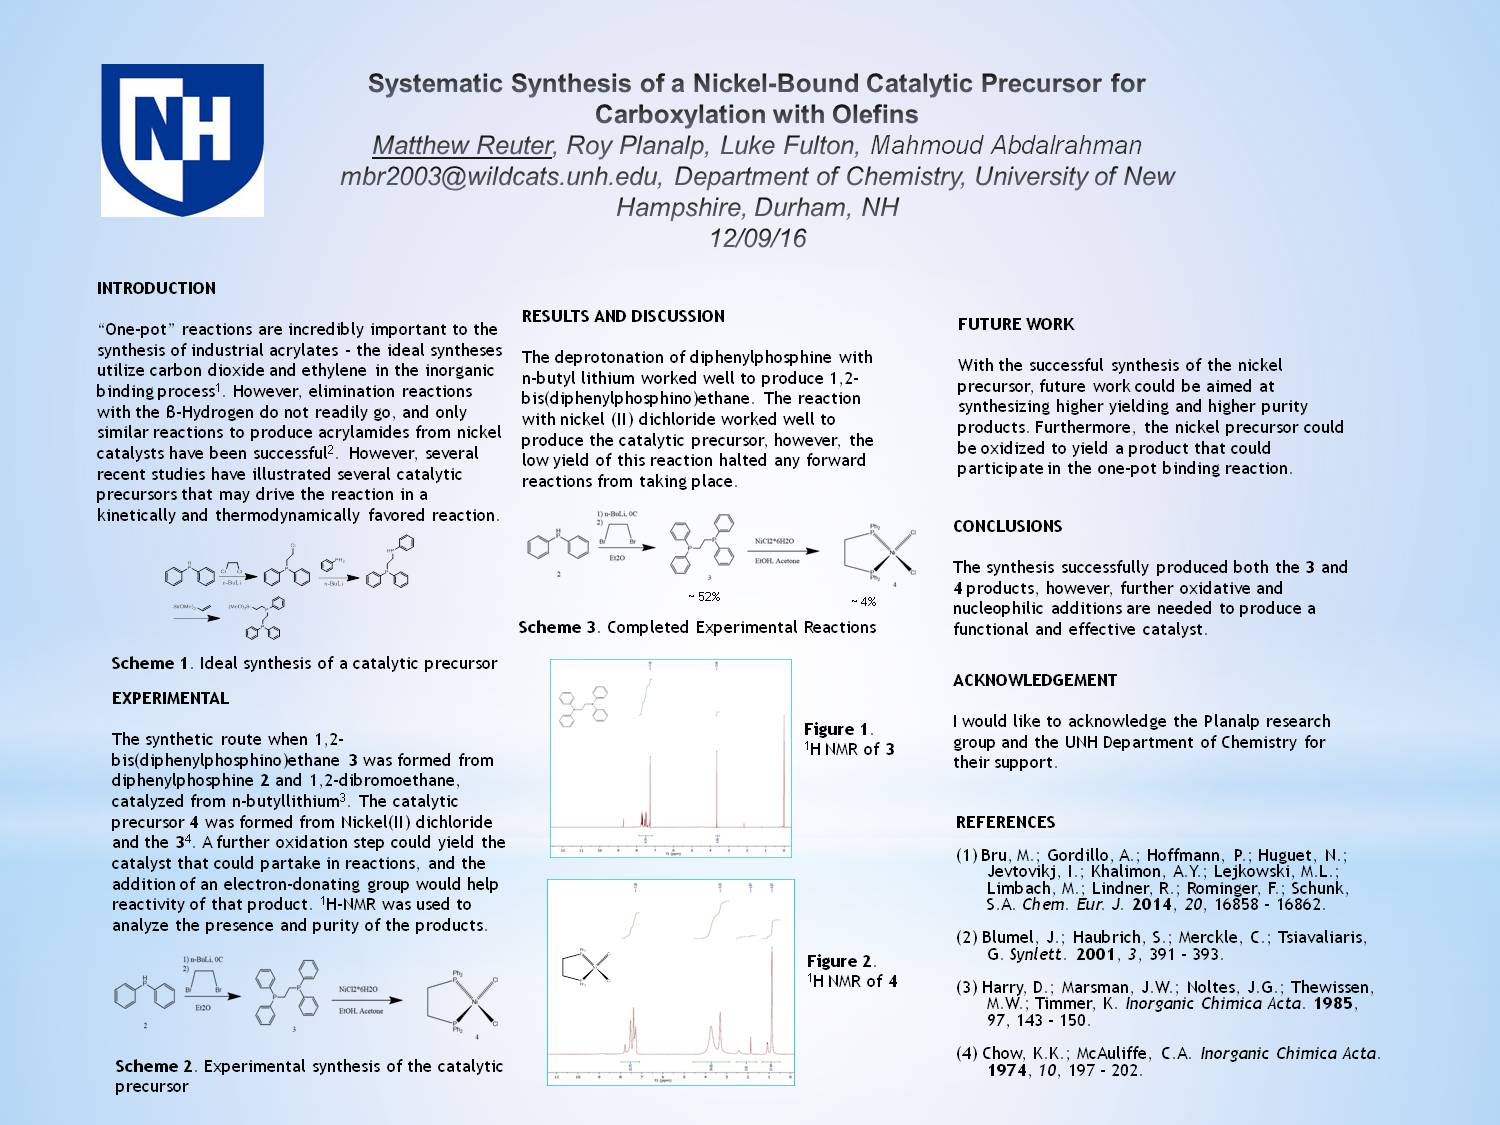 Systematic Synthesis Of A Nickel-Bound Catalytic Precursor For Carboxylation With Olefins by mbr2003